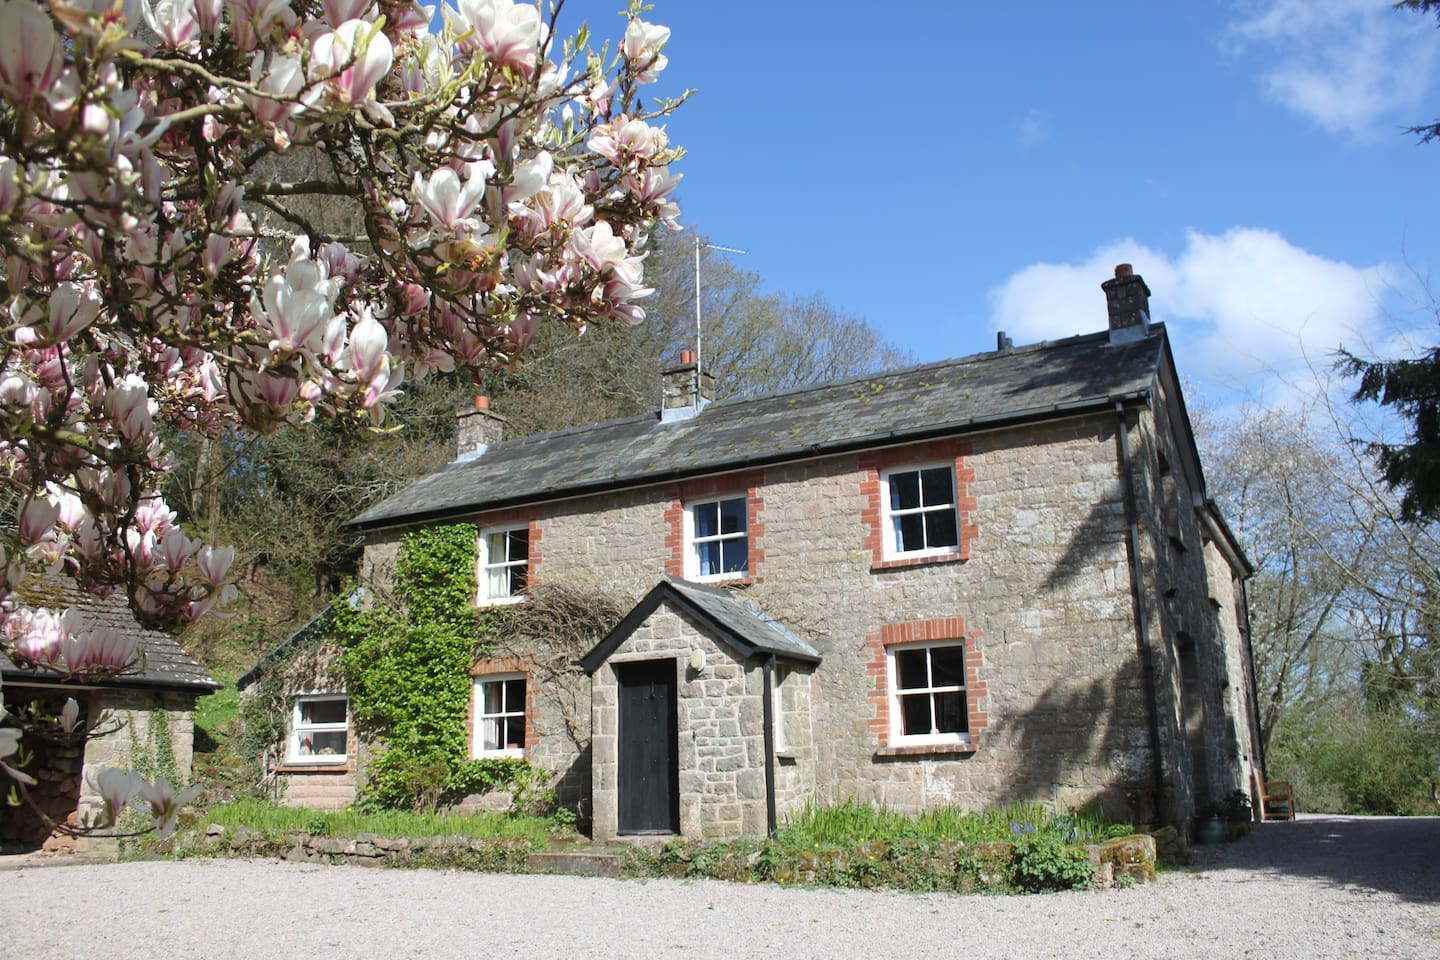 Church Hill Farm in Spring - the front of the house